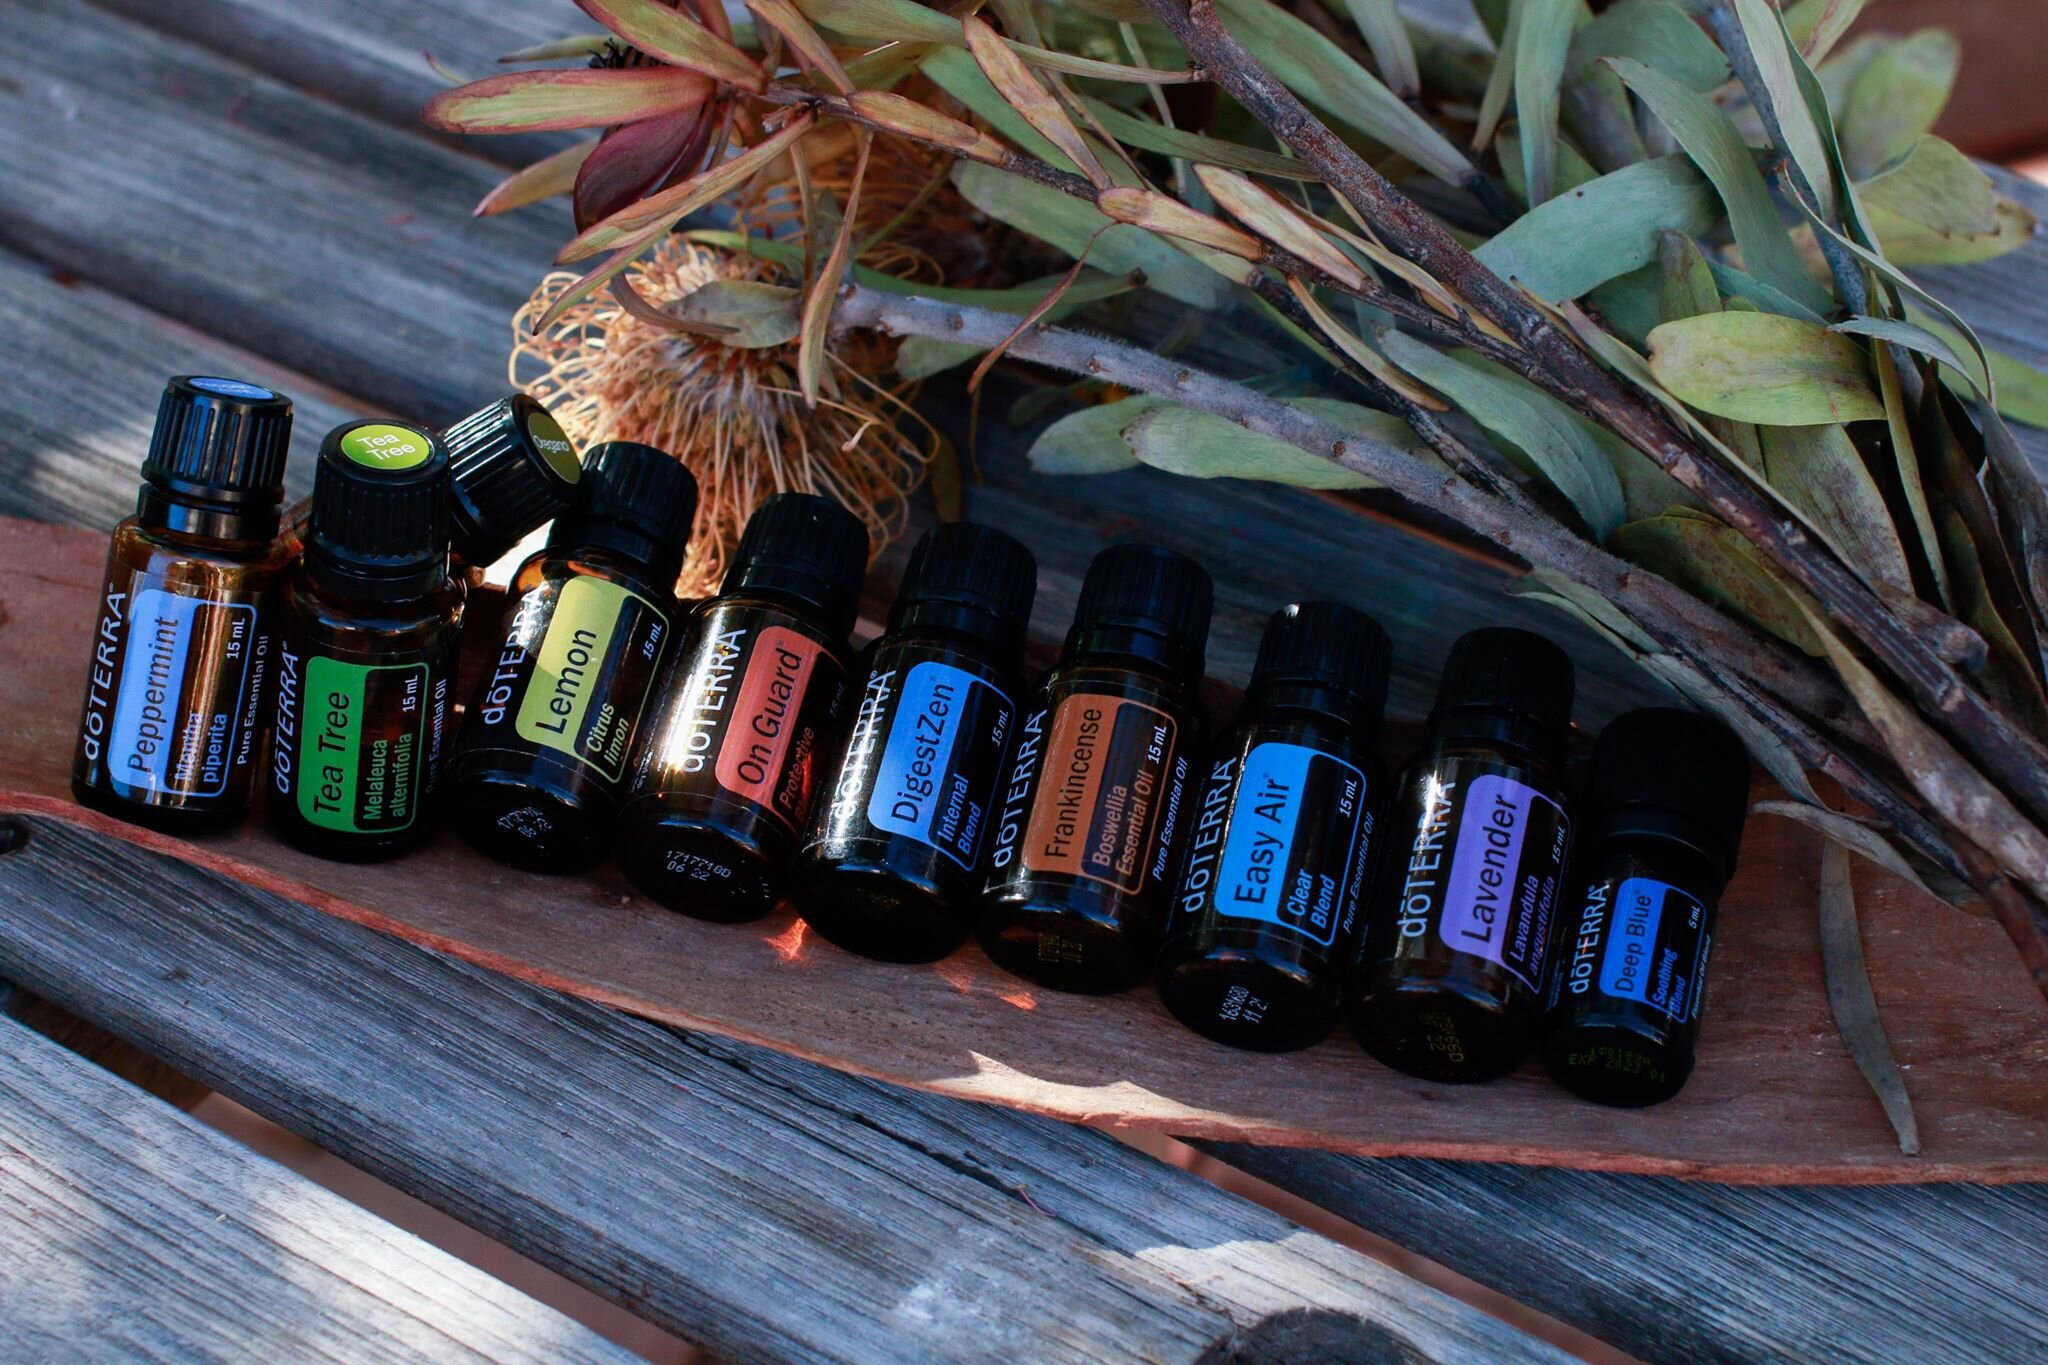 Houghton Spring Fair & Produce Market - Visit me to learn about Yoga & Essential Oils at the Houghton Spring Fair on Sunday 27th October.